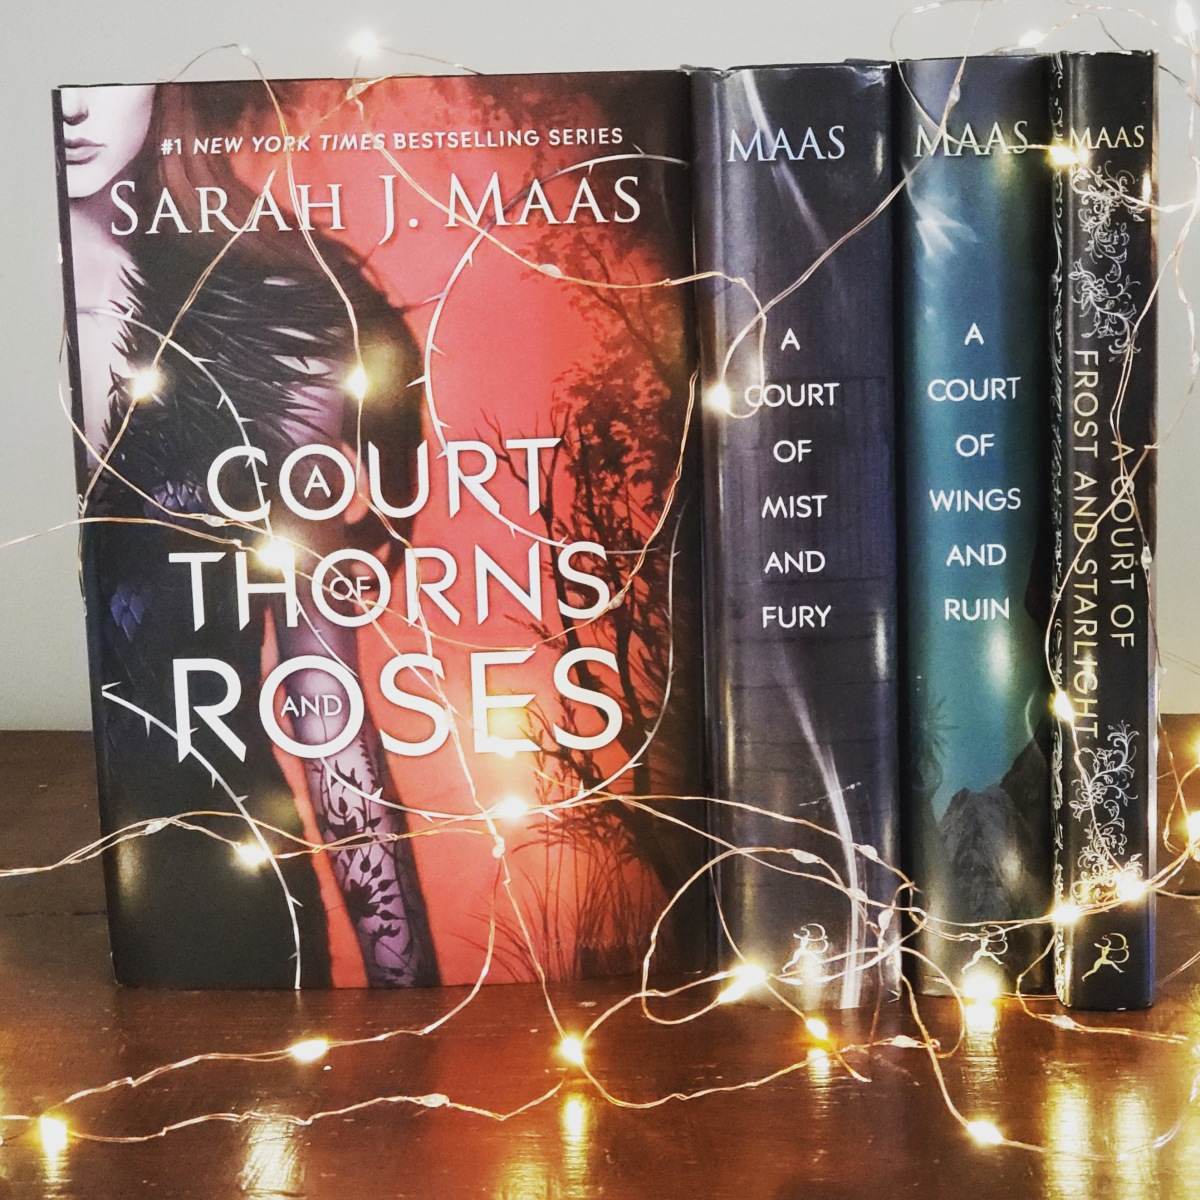 A Court of Thorns andRoses